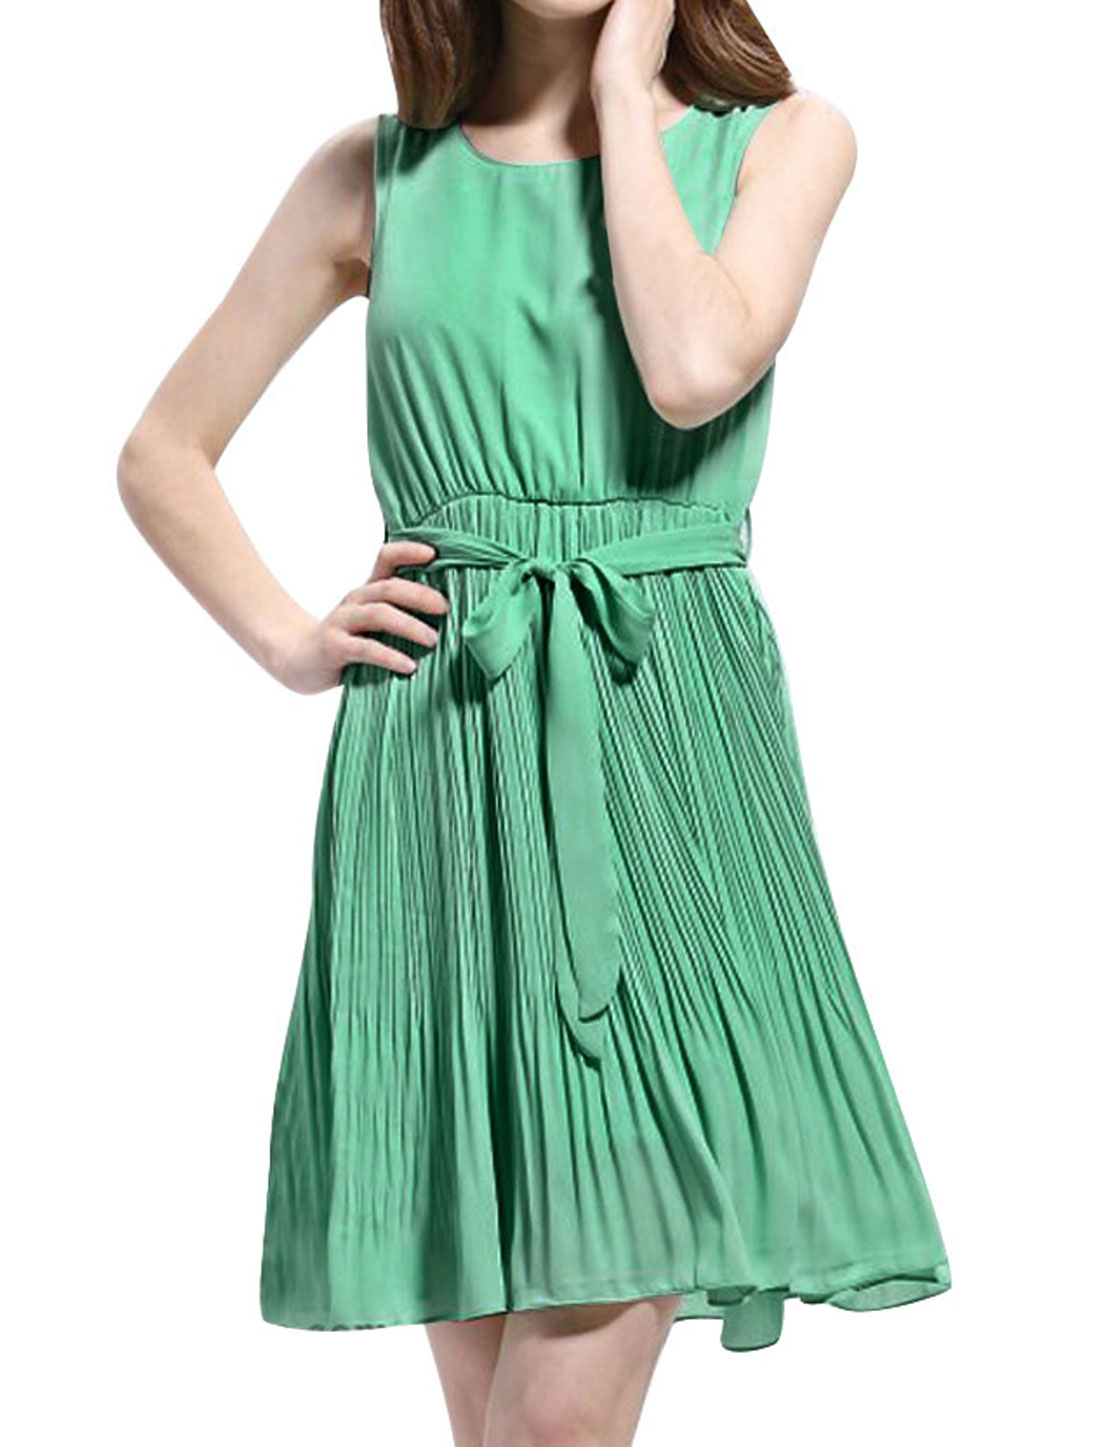 Lady Strap Stretchy Waist Pullover Lining Pleated Light Teal Dress M